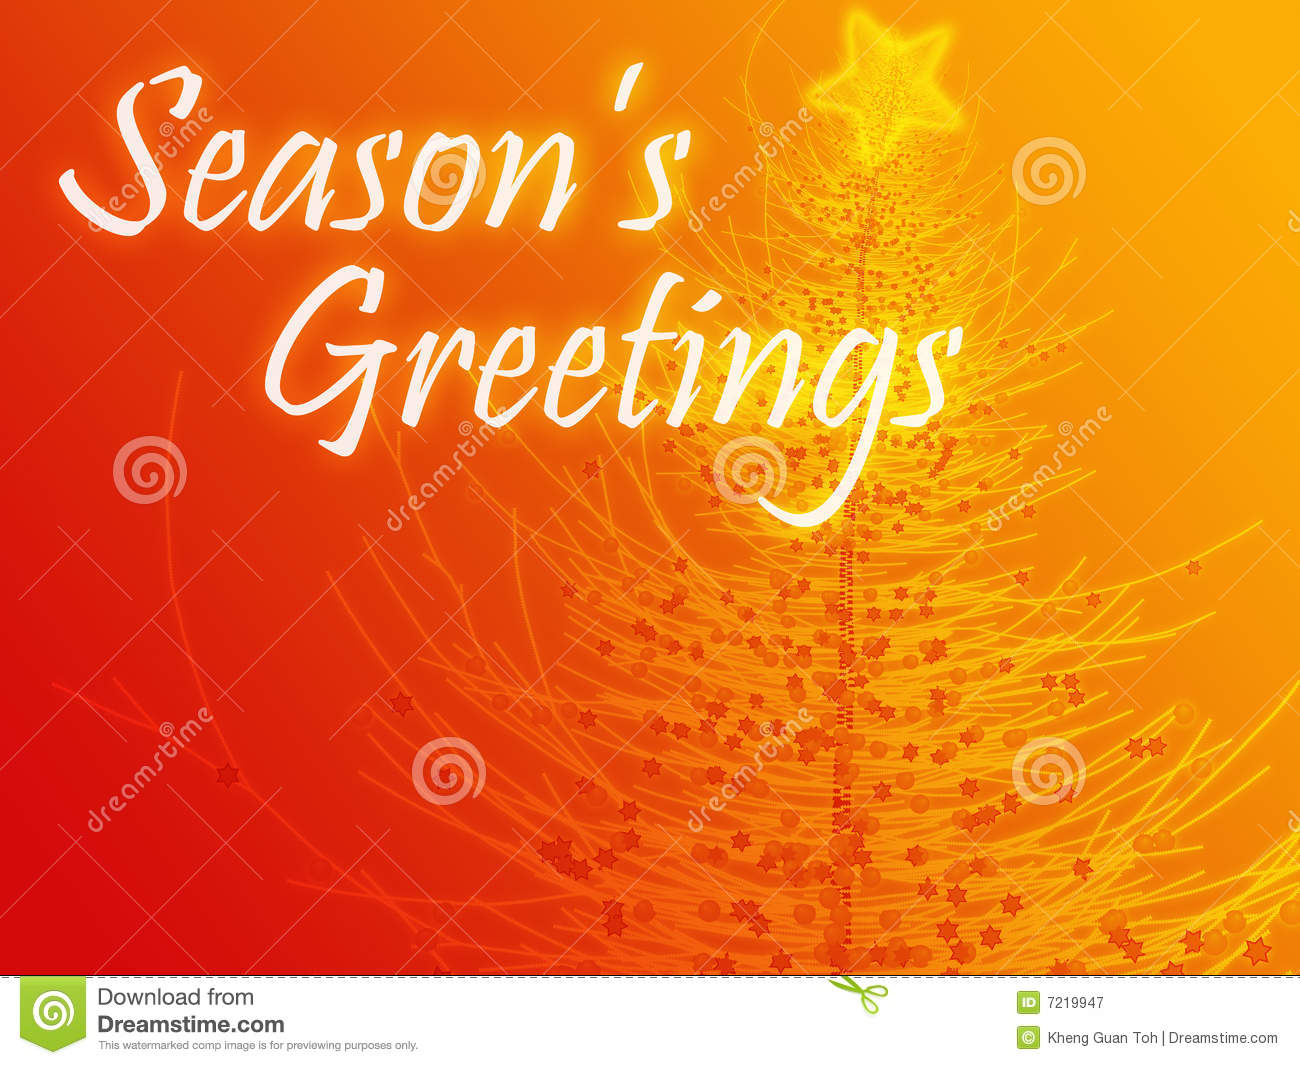 Seasons greetings stock illustration illustration of decorated seasons greetings m4hsunfo